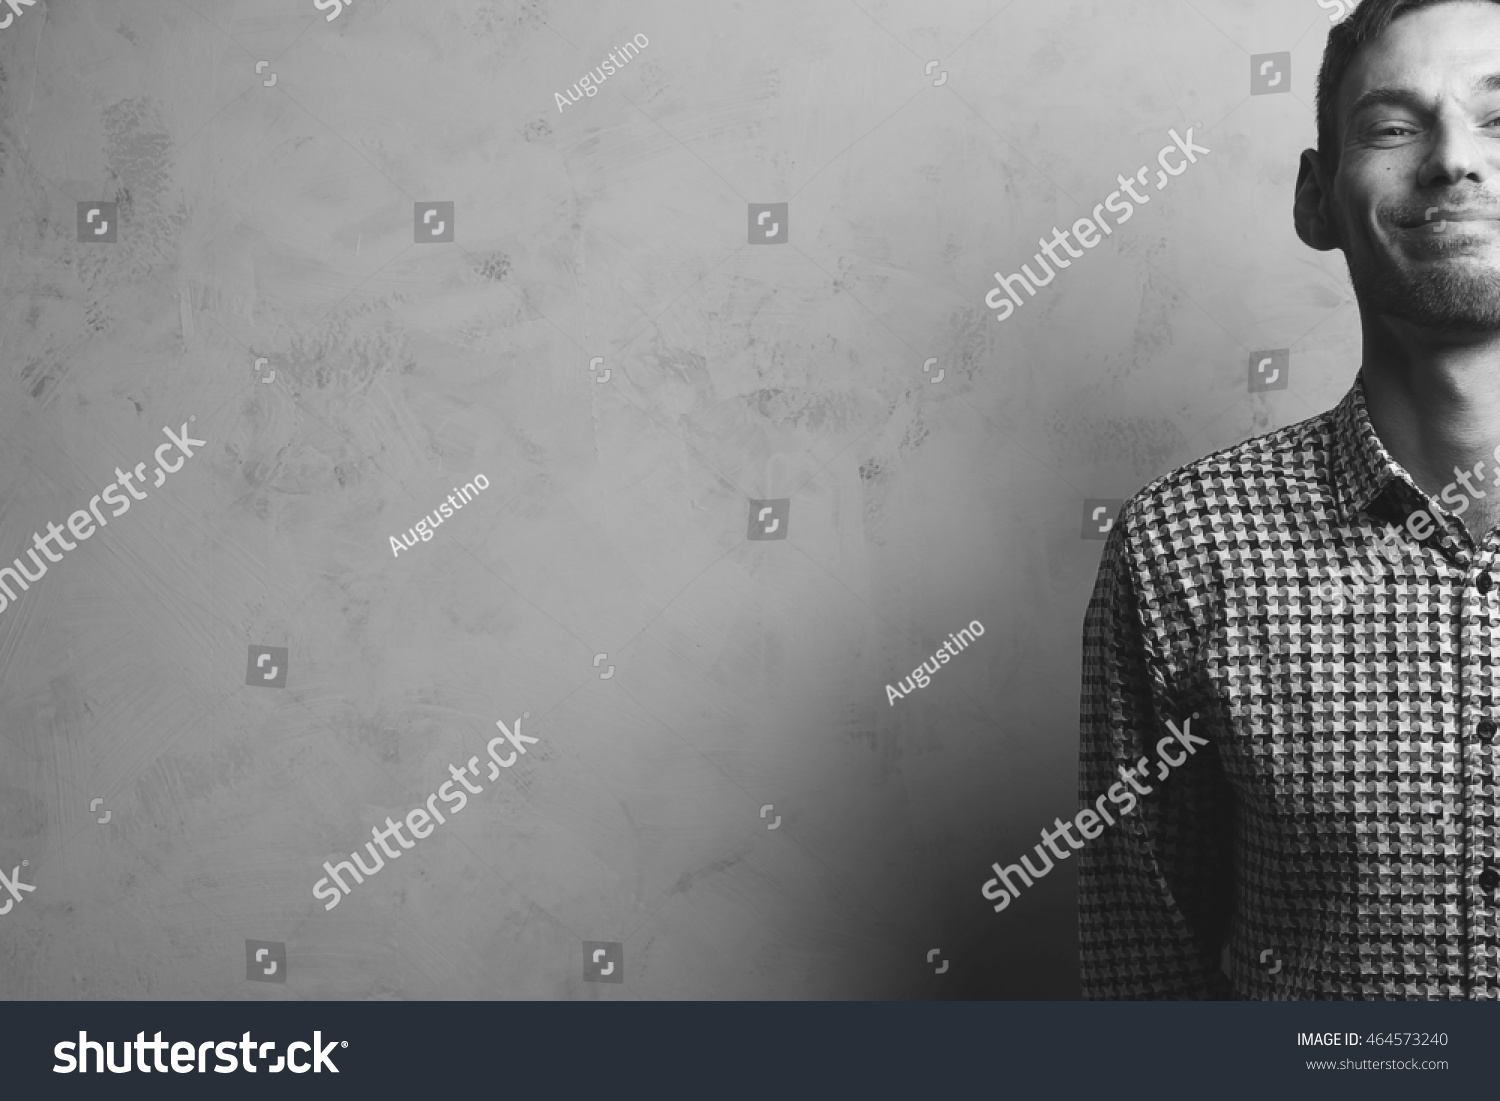 Vintage Bad Copy Monochrome Portrait Smiling Handsome Young Man Stock Photo